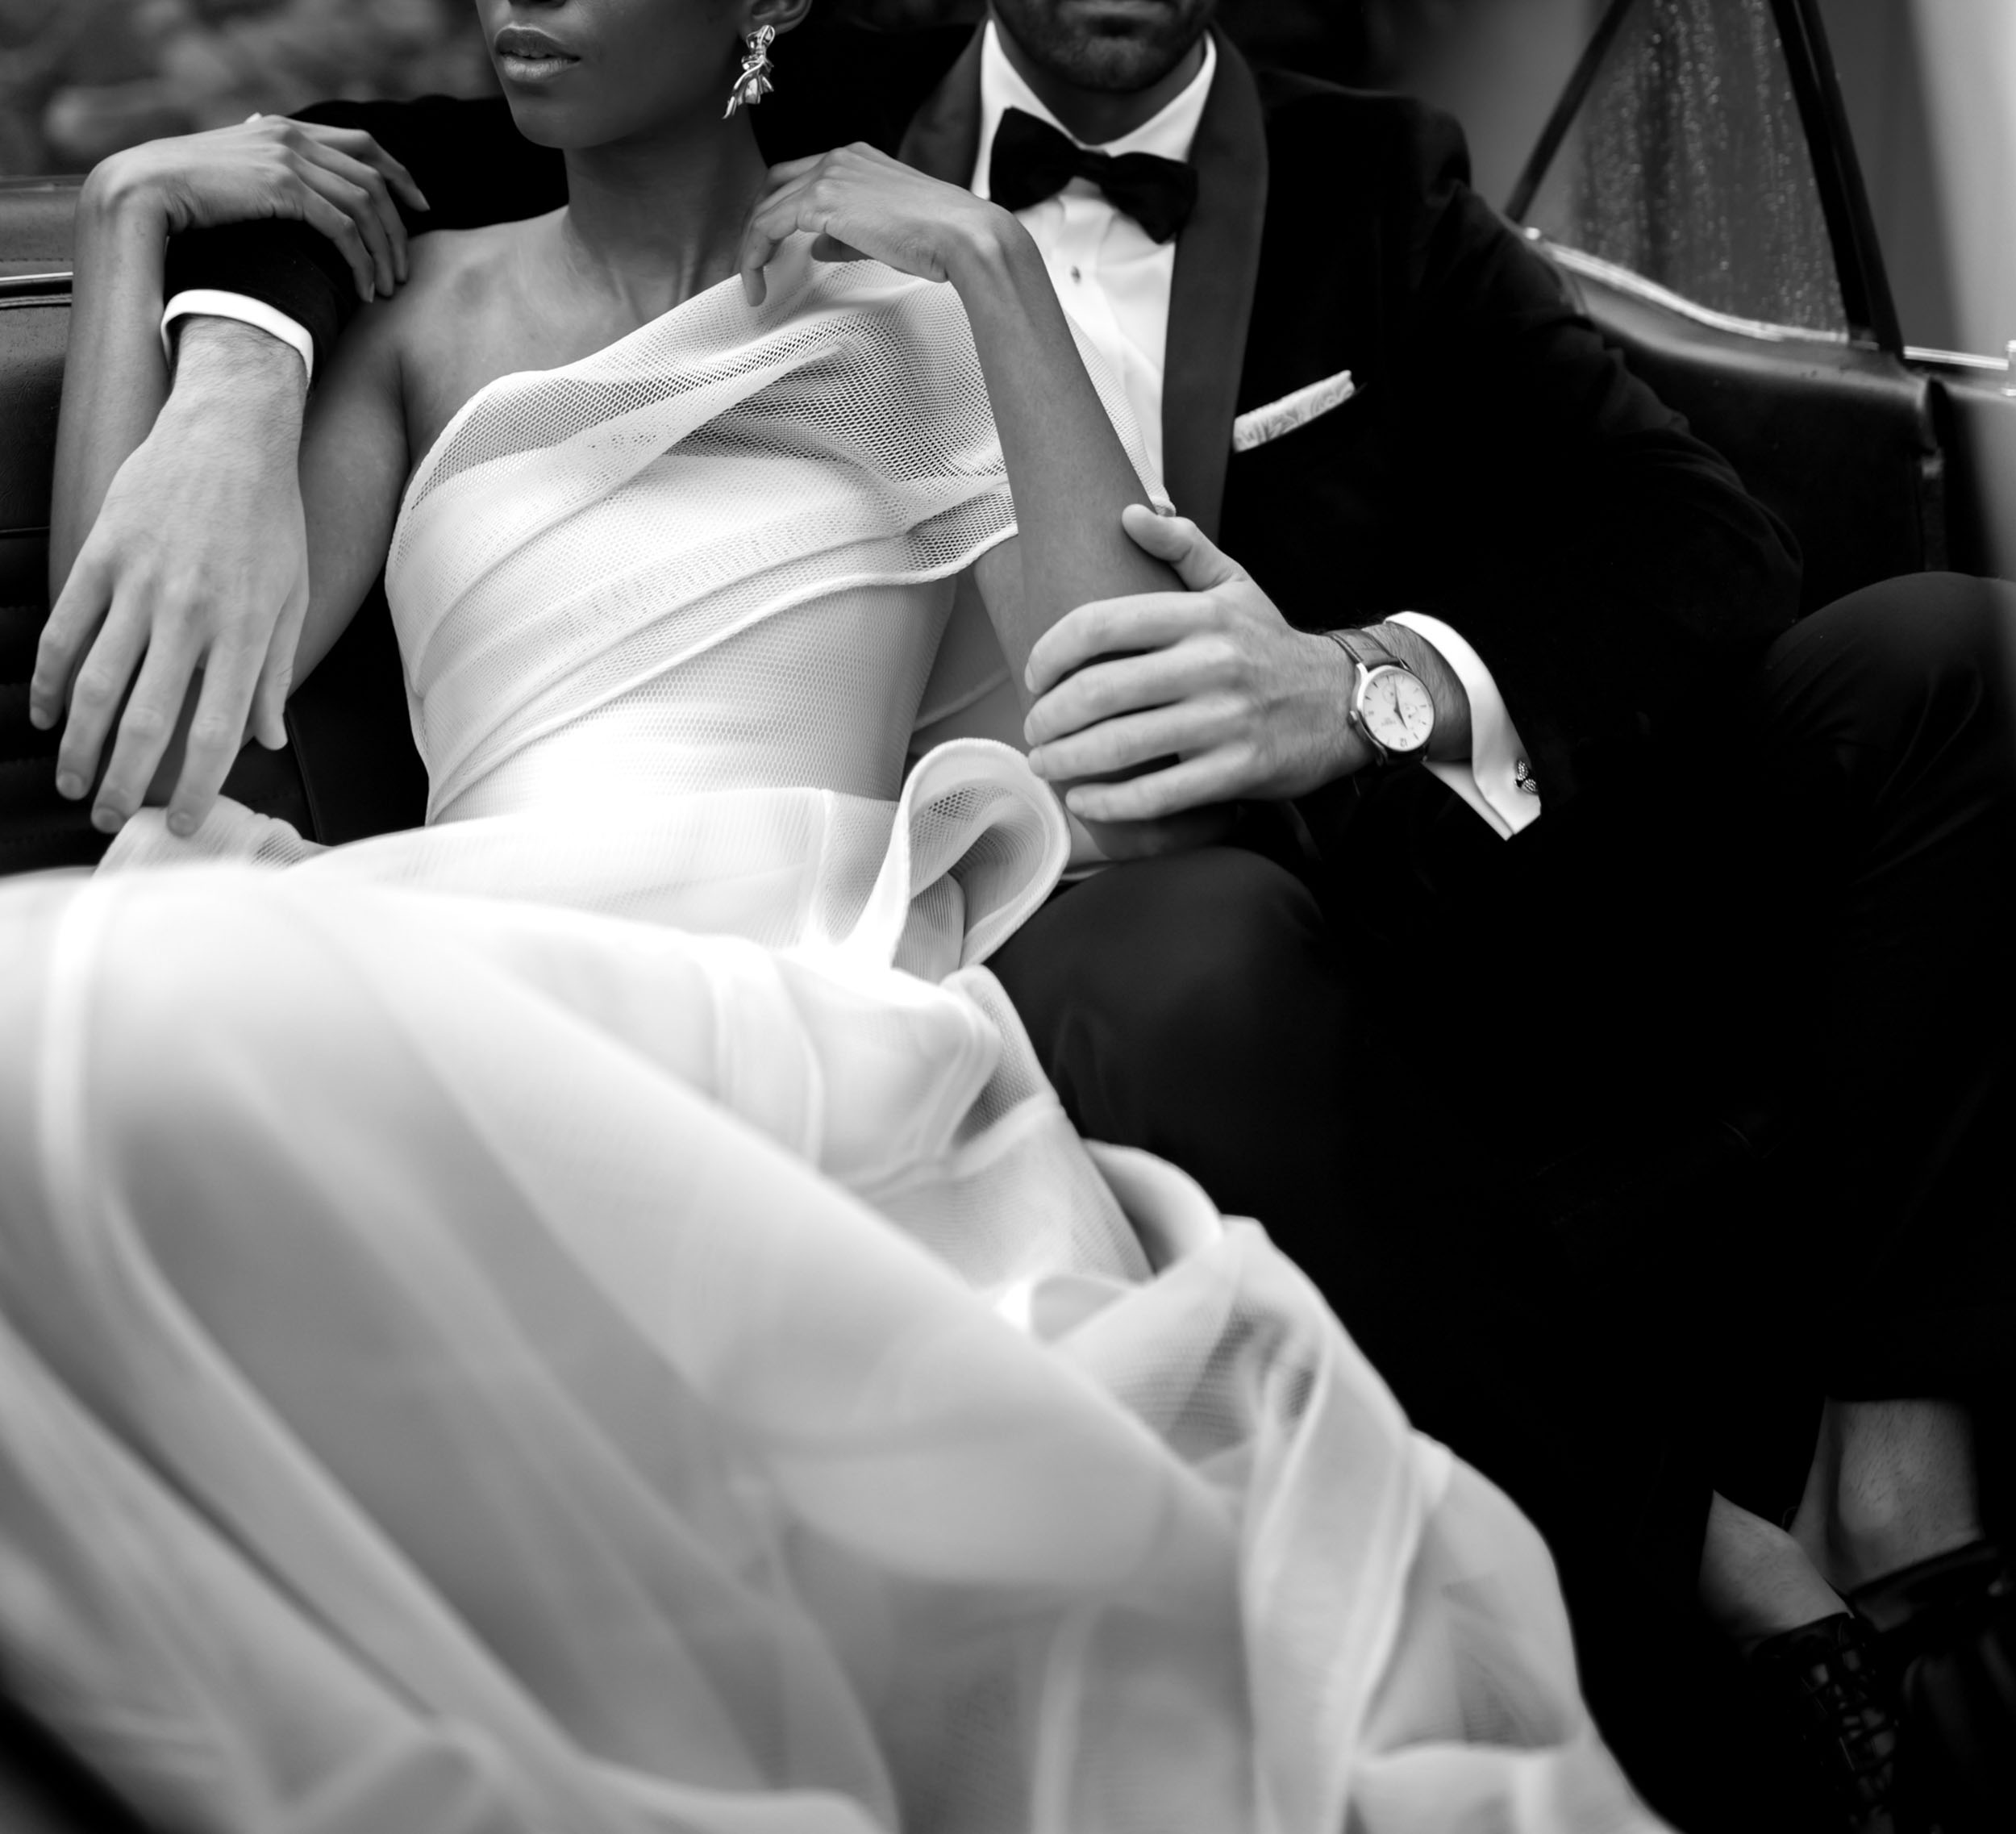 Destination Black Tie - Captivated by movement, texture, romance, the use of light and reflections to evoke emotion, the inclusion of these elements could not be compromised on.